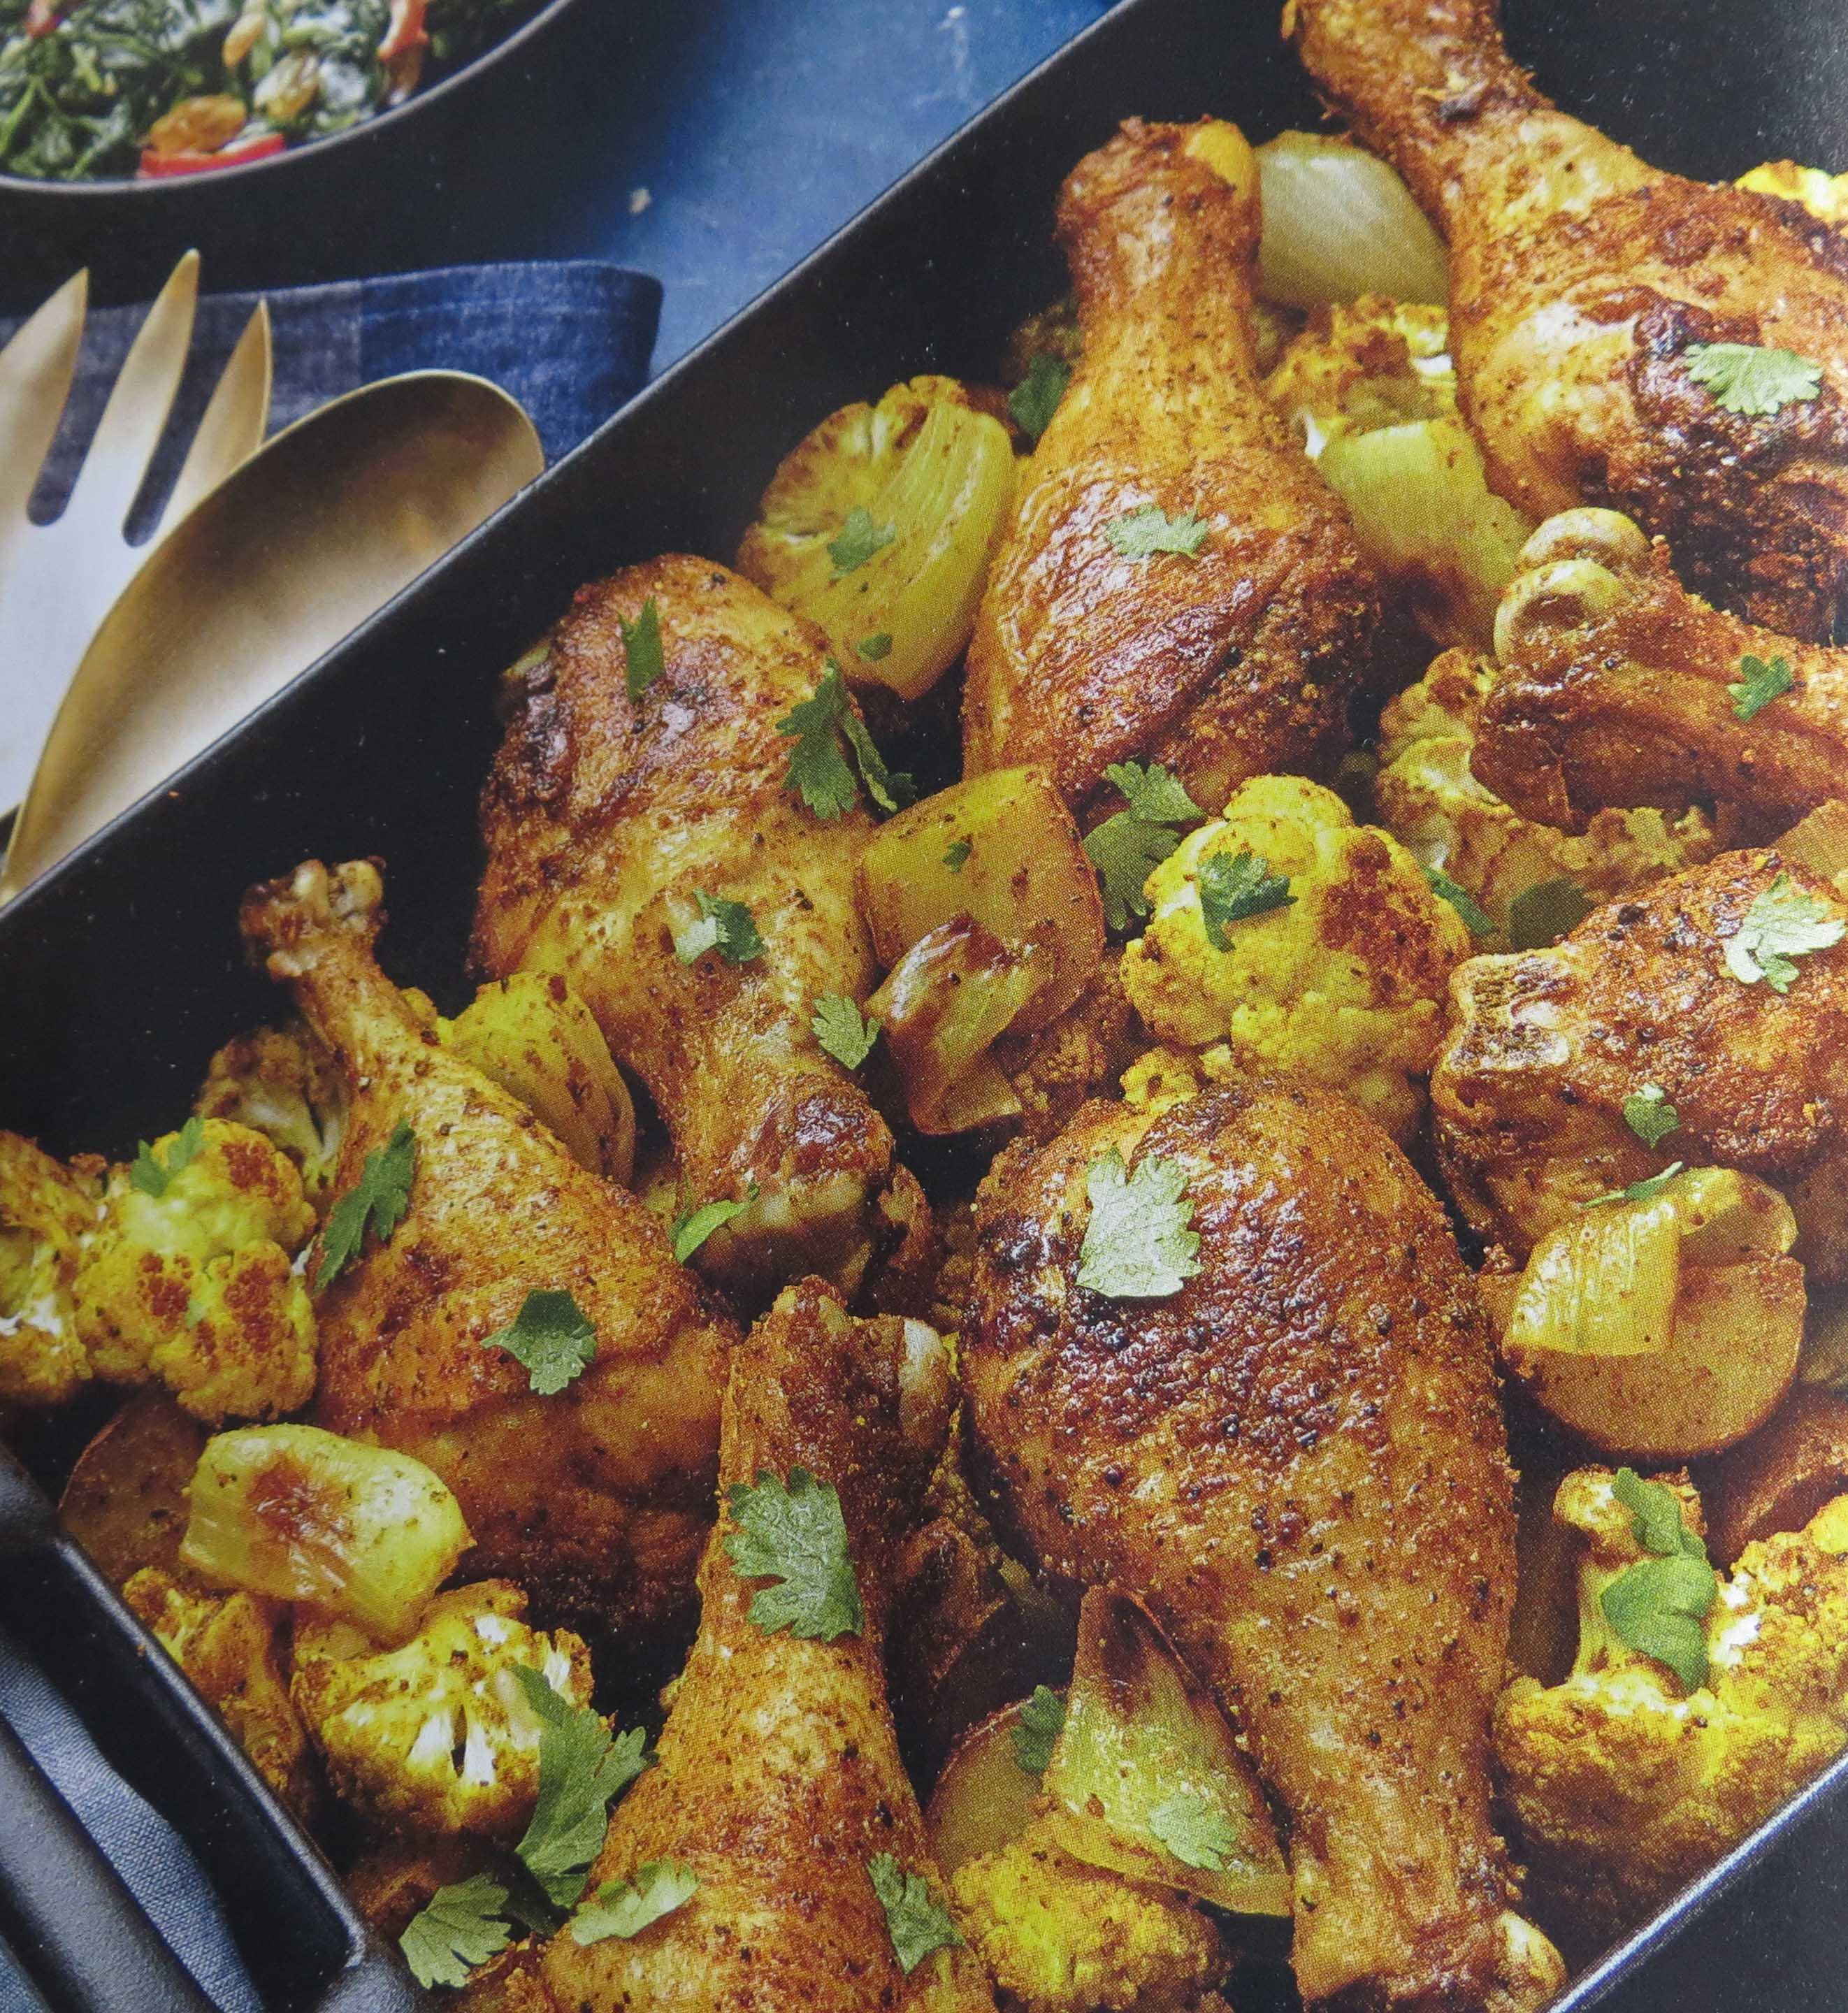 Recipes for chicken legs and potatoes